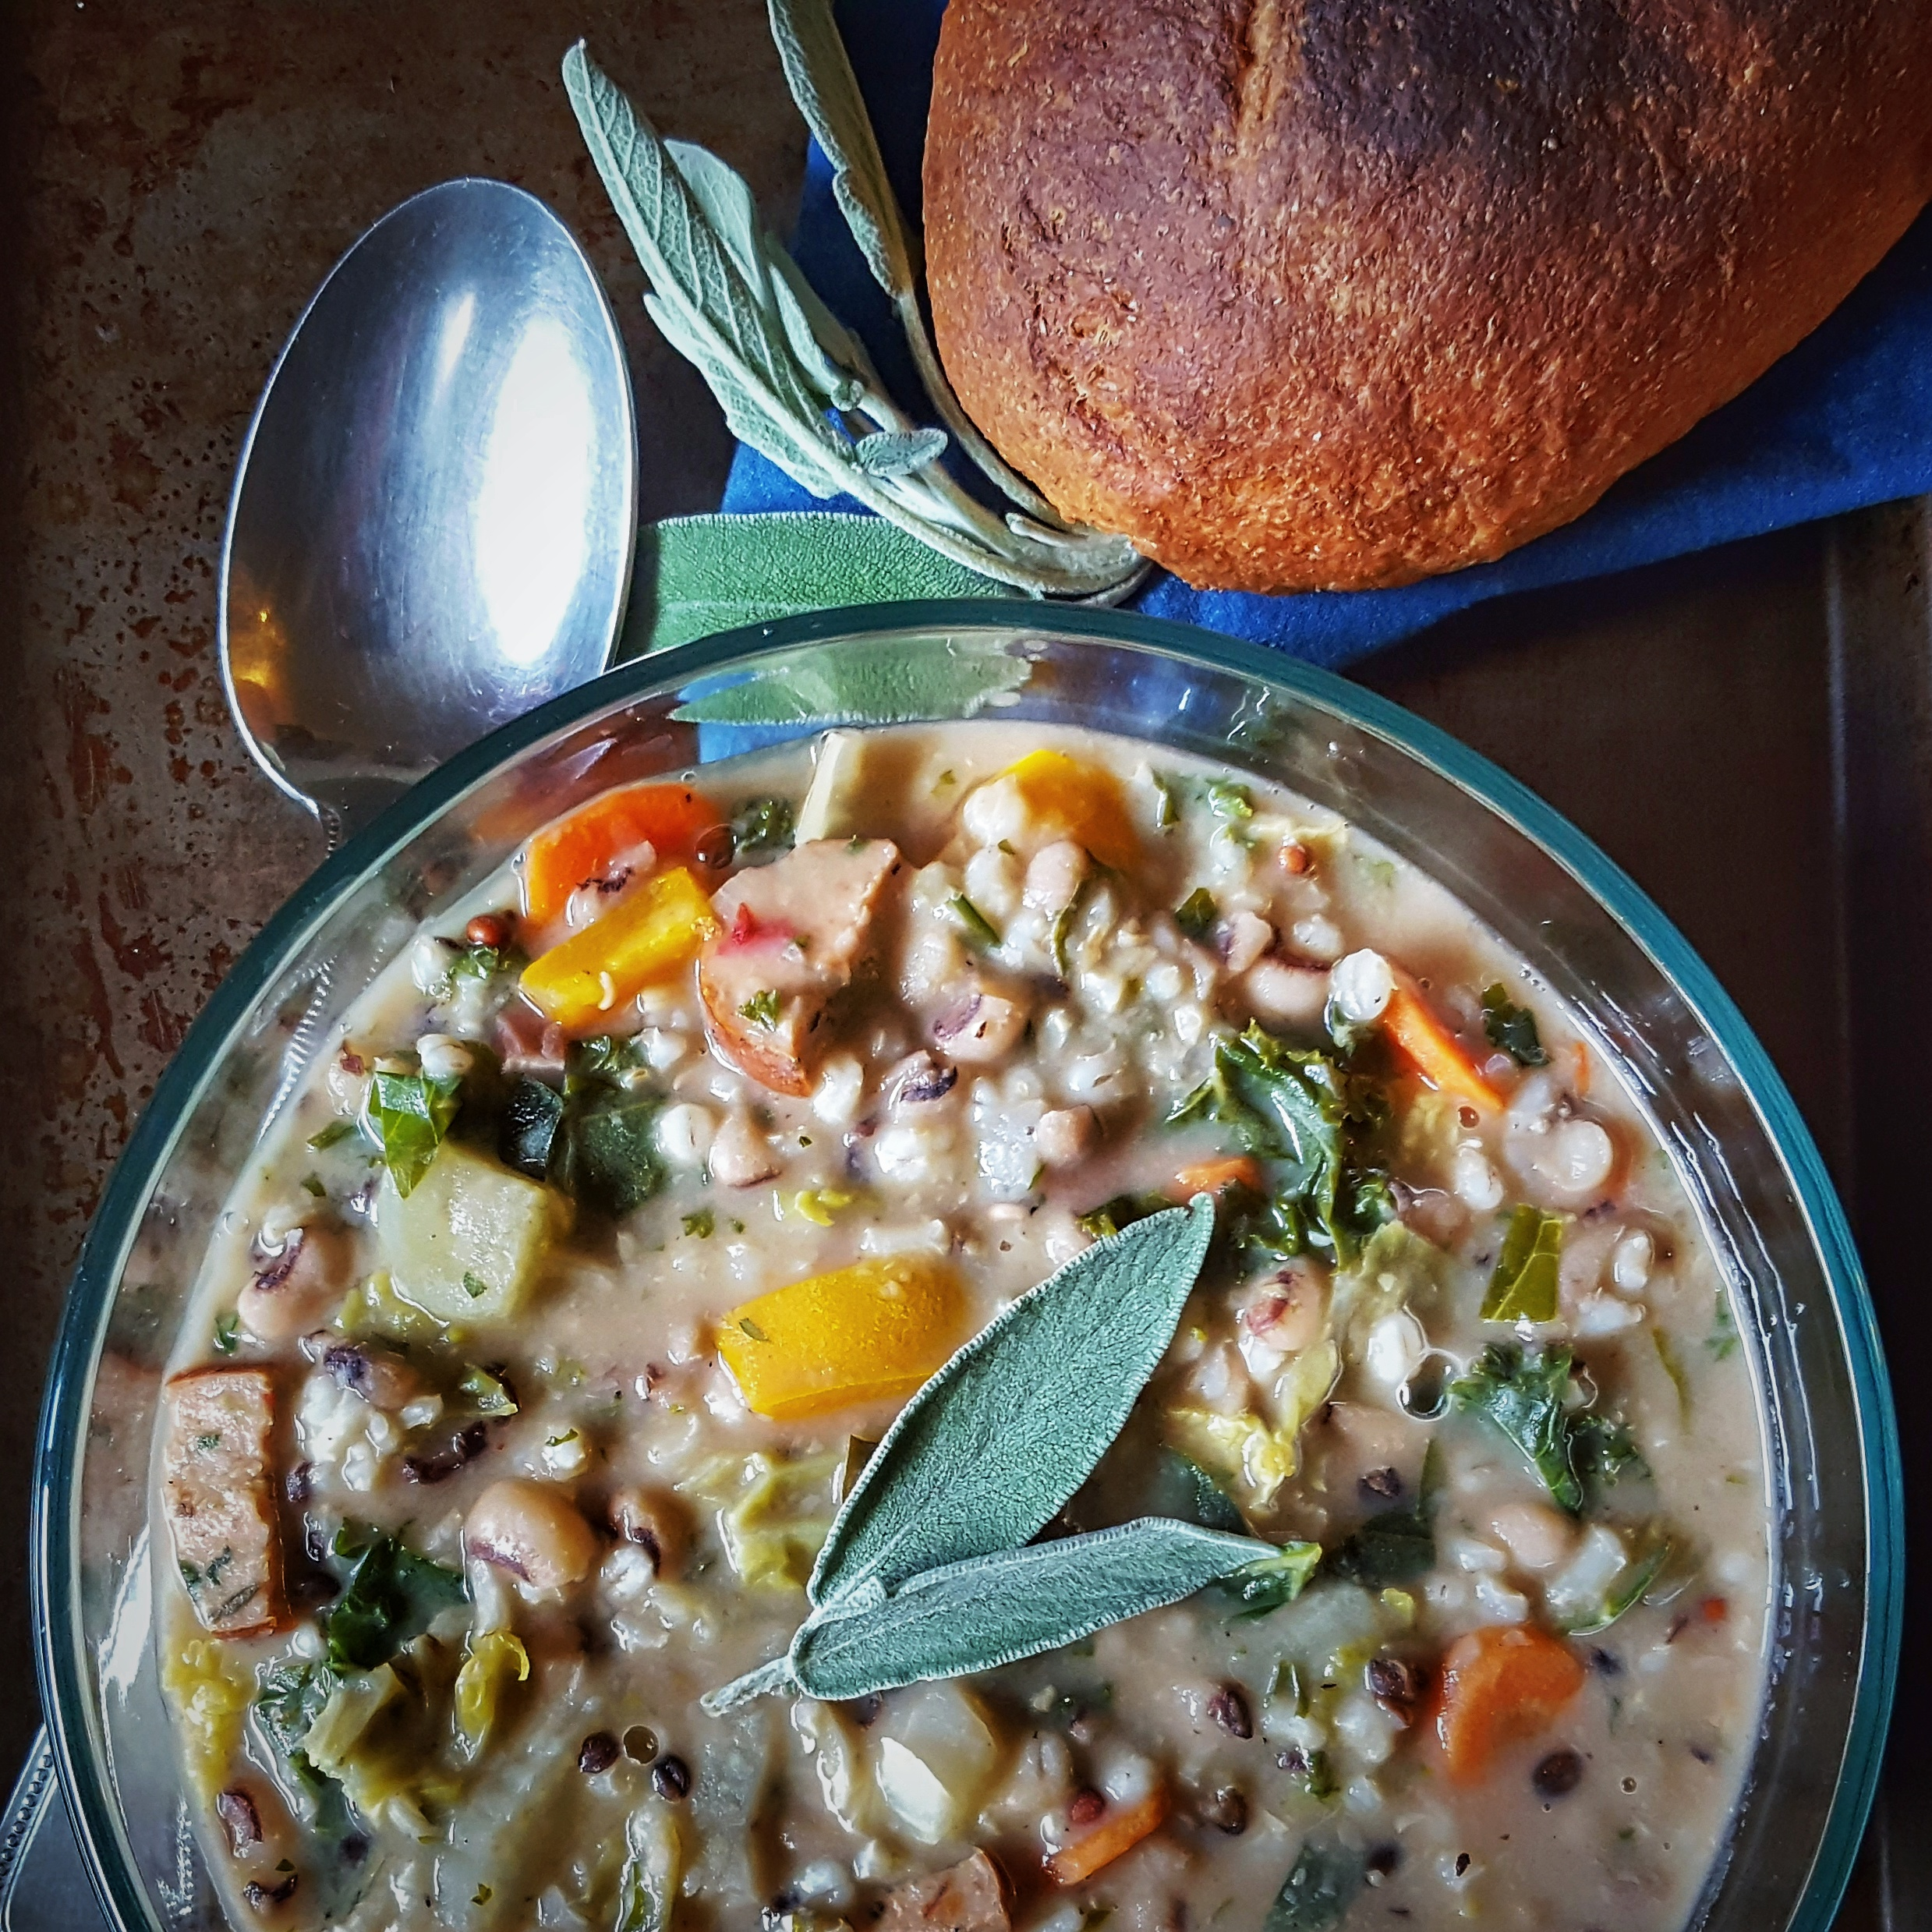 Black-Eyed Pea, Sausage, Greens and Wild Rice Soup | Simply Sophisticated Cooking